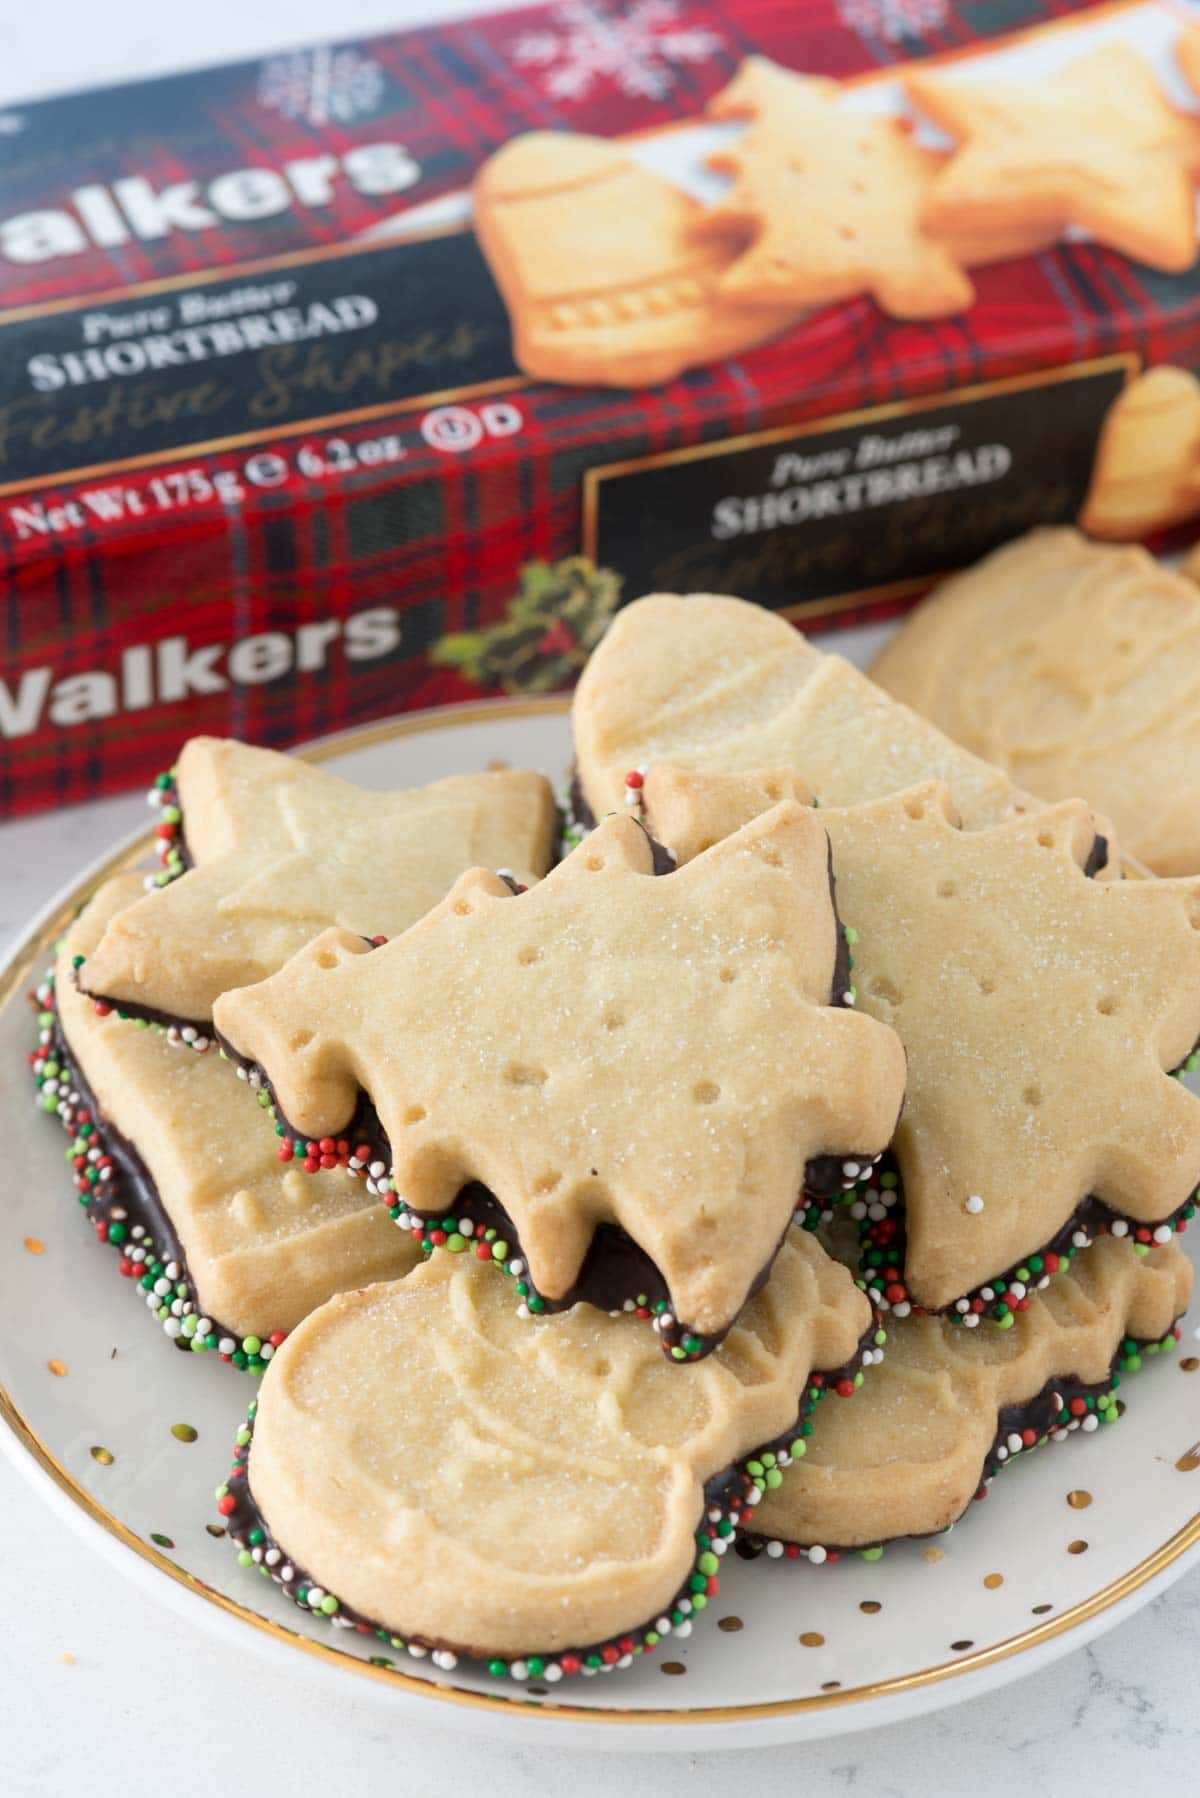 Chocolate Dipped Shortbread  An Easy 5 Minute Semi Homemade Recipe